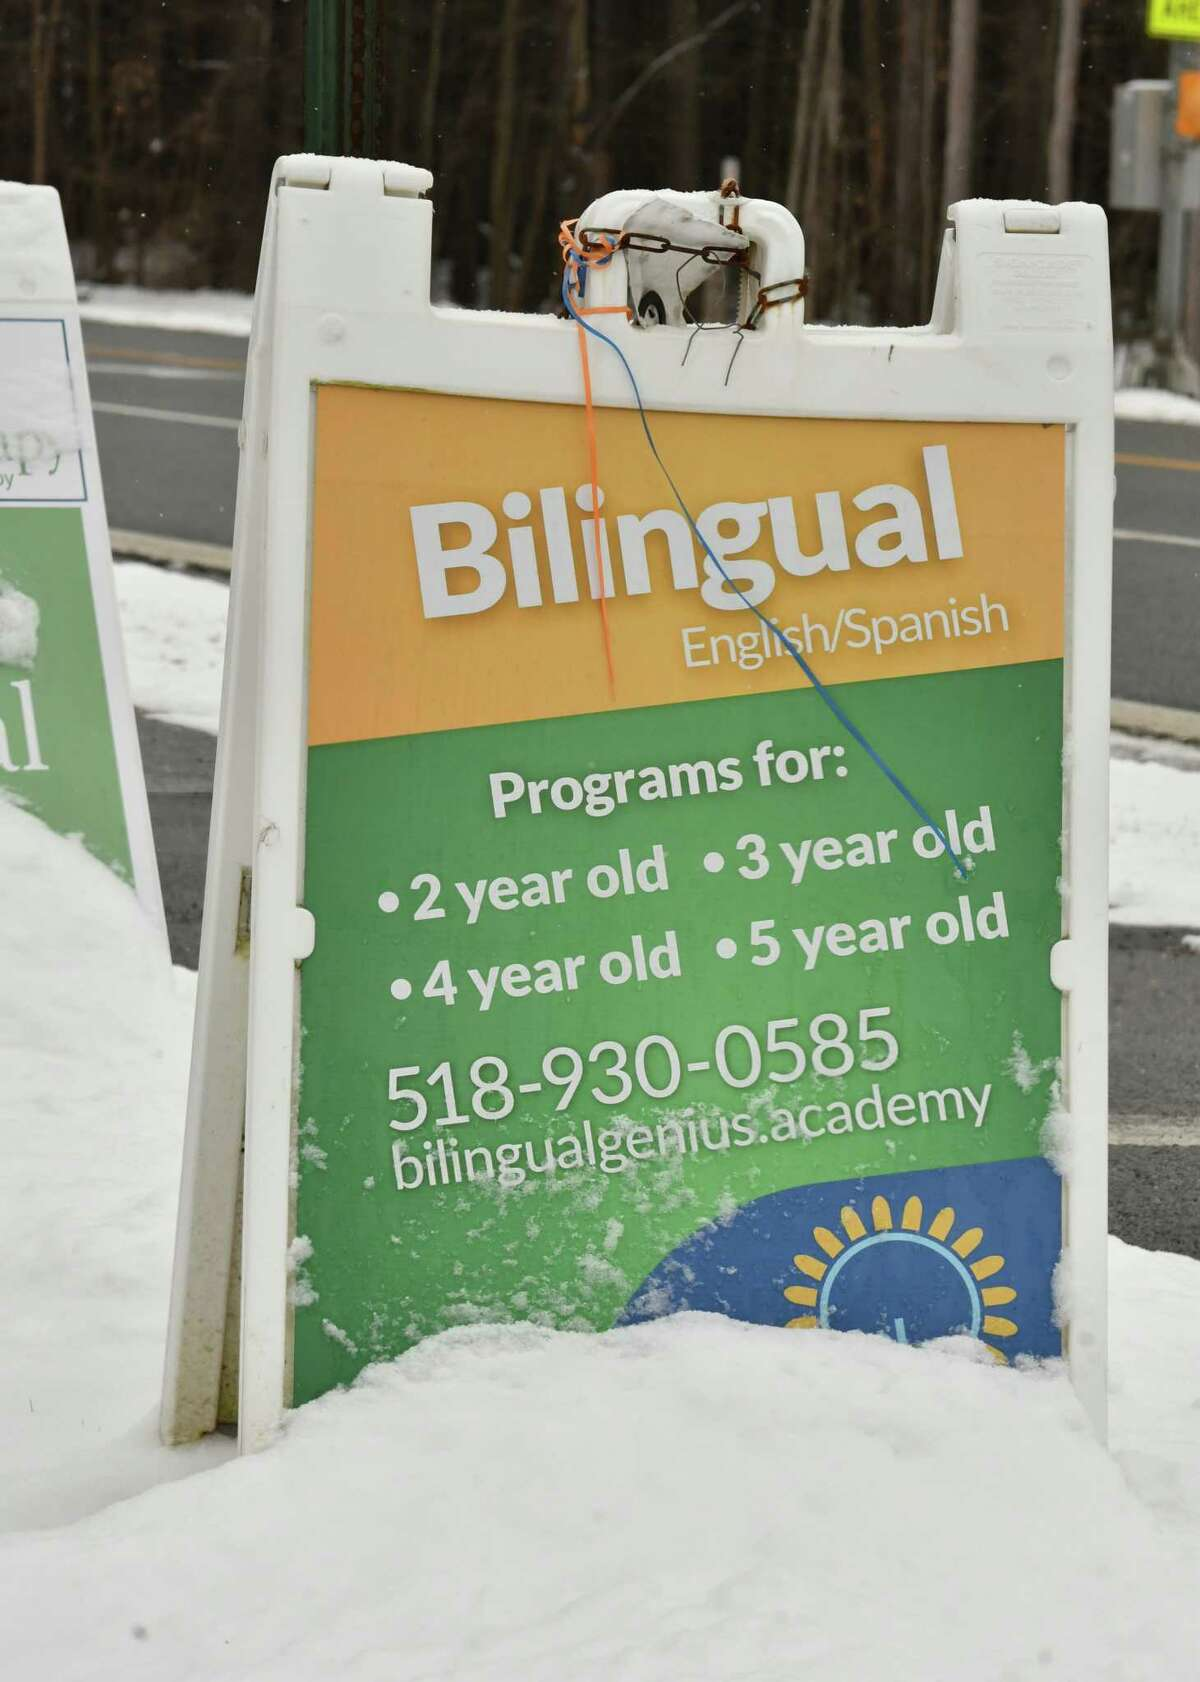 Sign near road for Bilingual Genuis Academy on Friday, Jan. 18, 2019 in Clifton Park, N.Y. The daycare center has many violations that parents don't know about and it is still operating. Their state licenses will be revoked soon. (Lori Van Buren/Times Union)